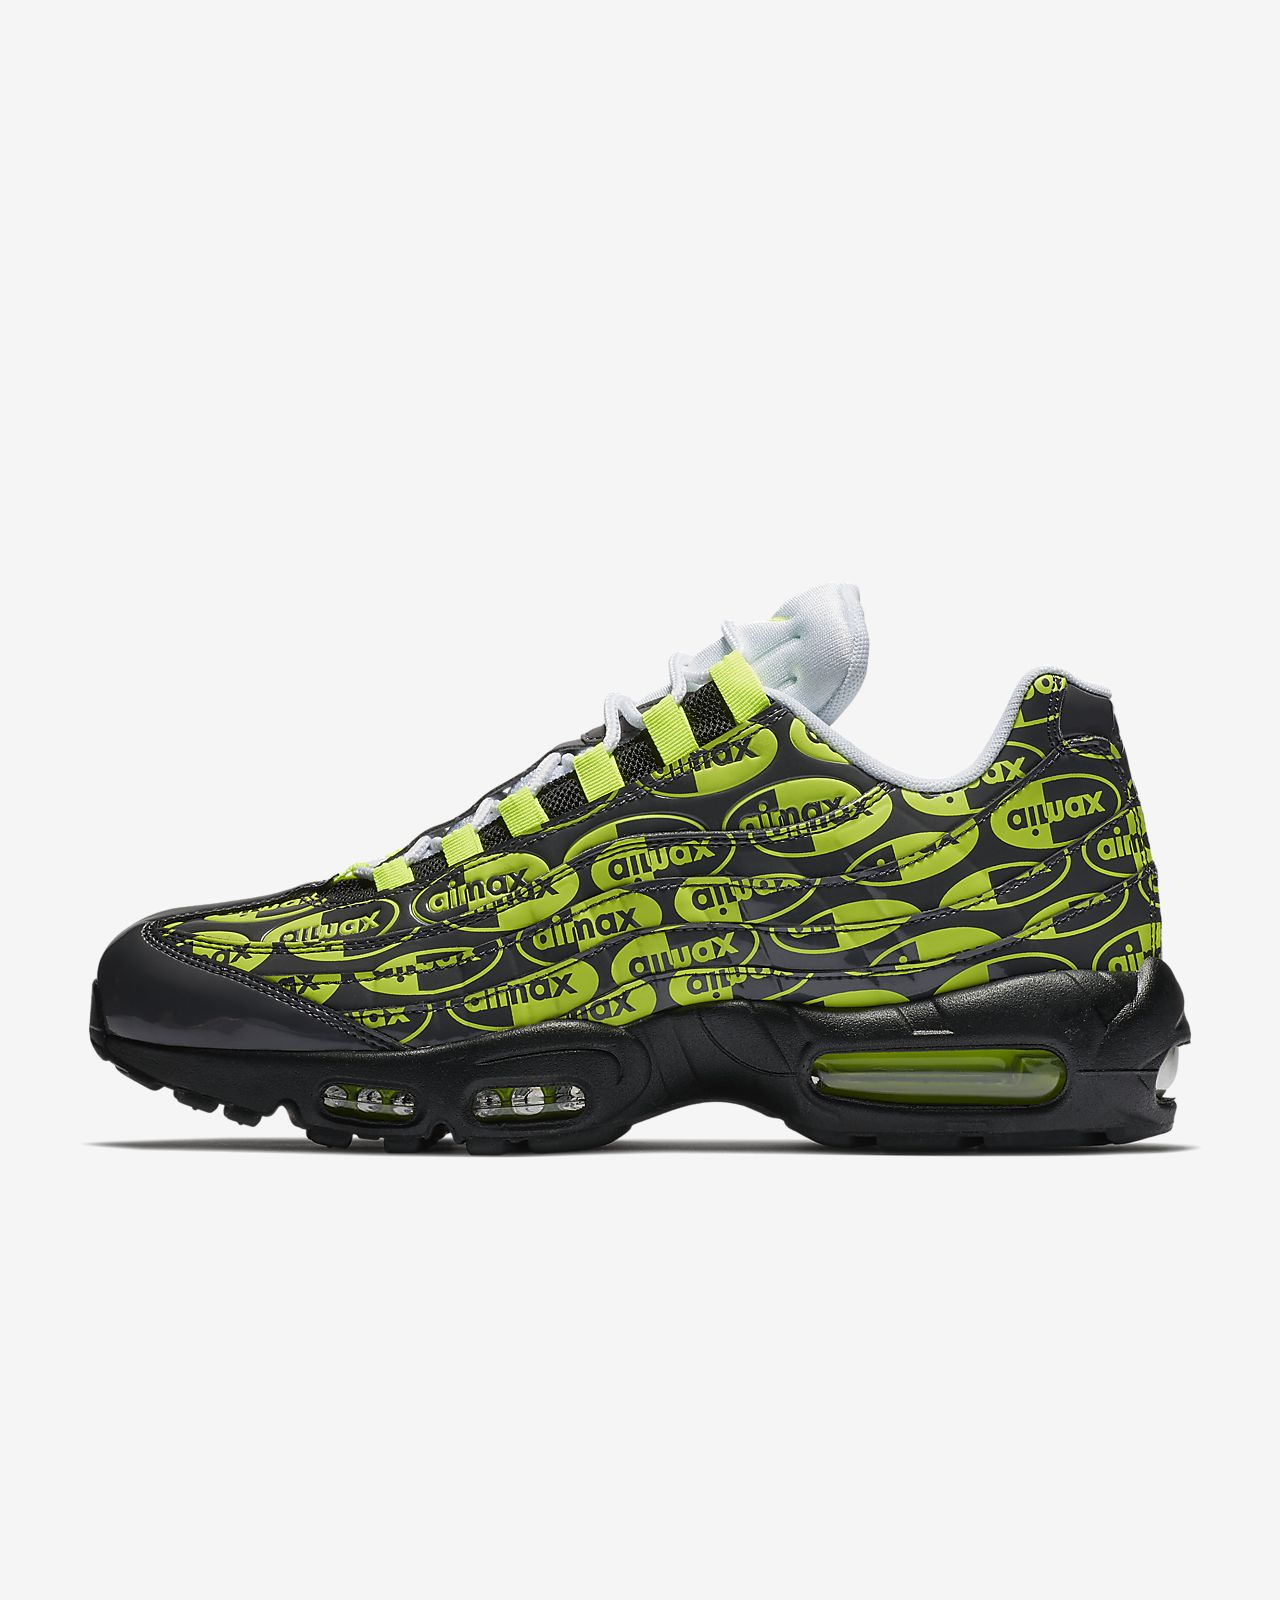 f9ee83e7e61 Nike Air Max 95 Premium Men s Shoe. Nike.com GB